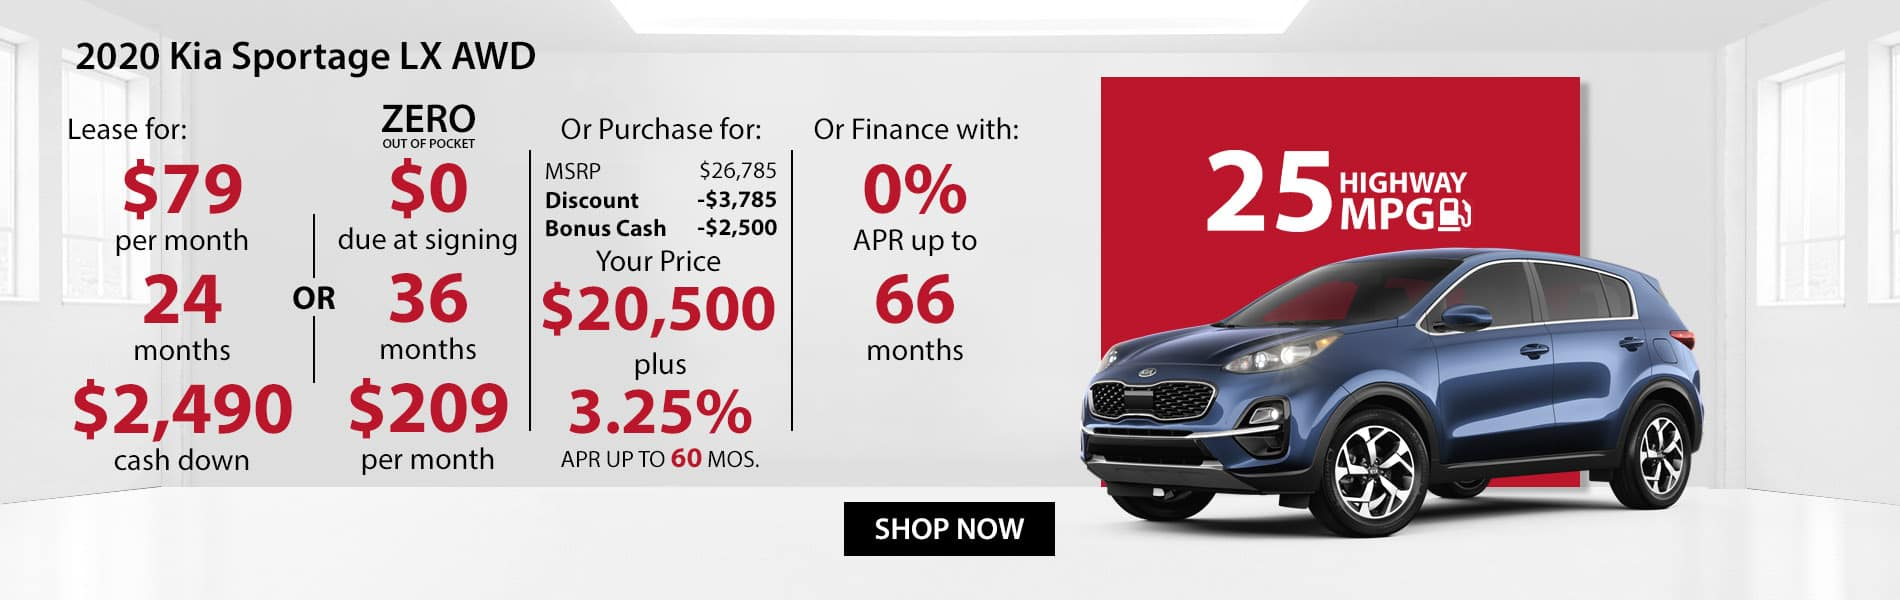 Special offer on 2020 Kia Sportage LX AWD Lease for $79 or Purchase for $20,500 with 3.25% APR or get 0% APR for 66 months.